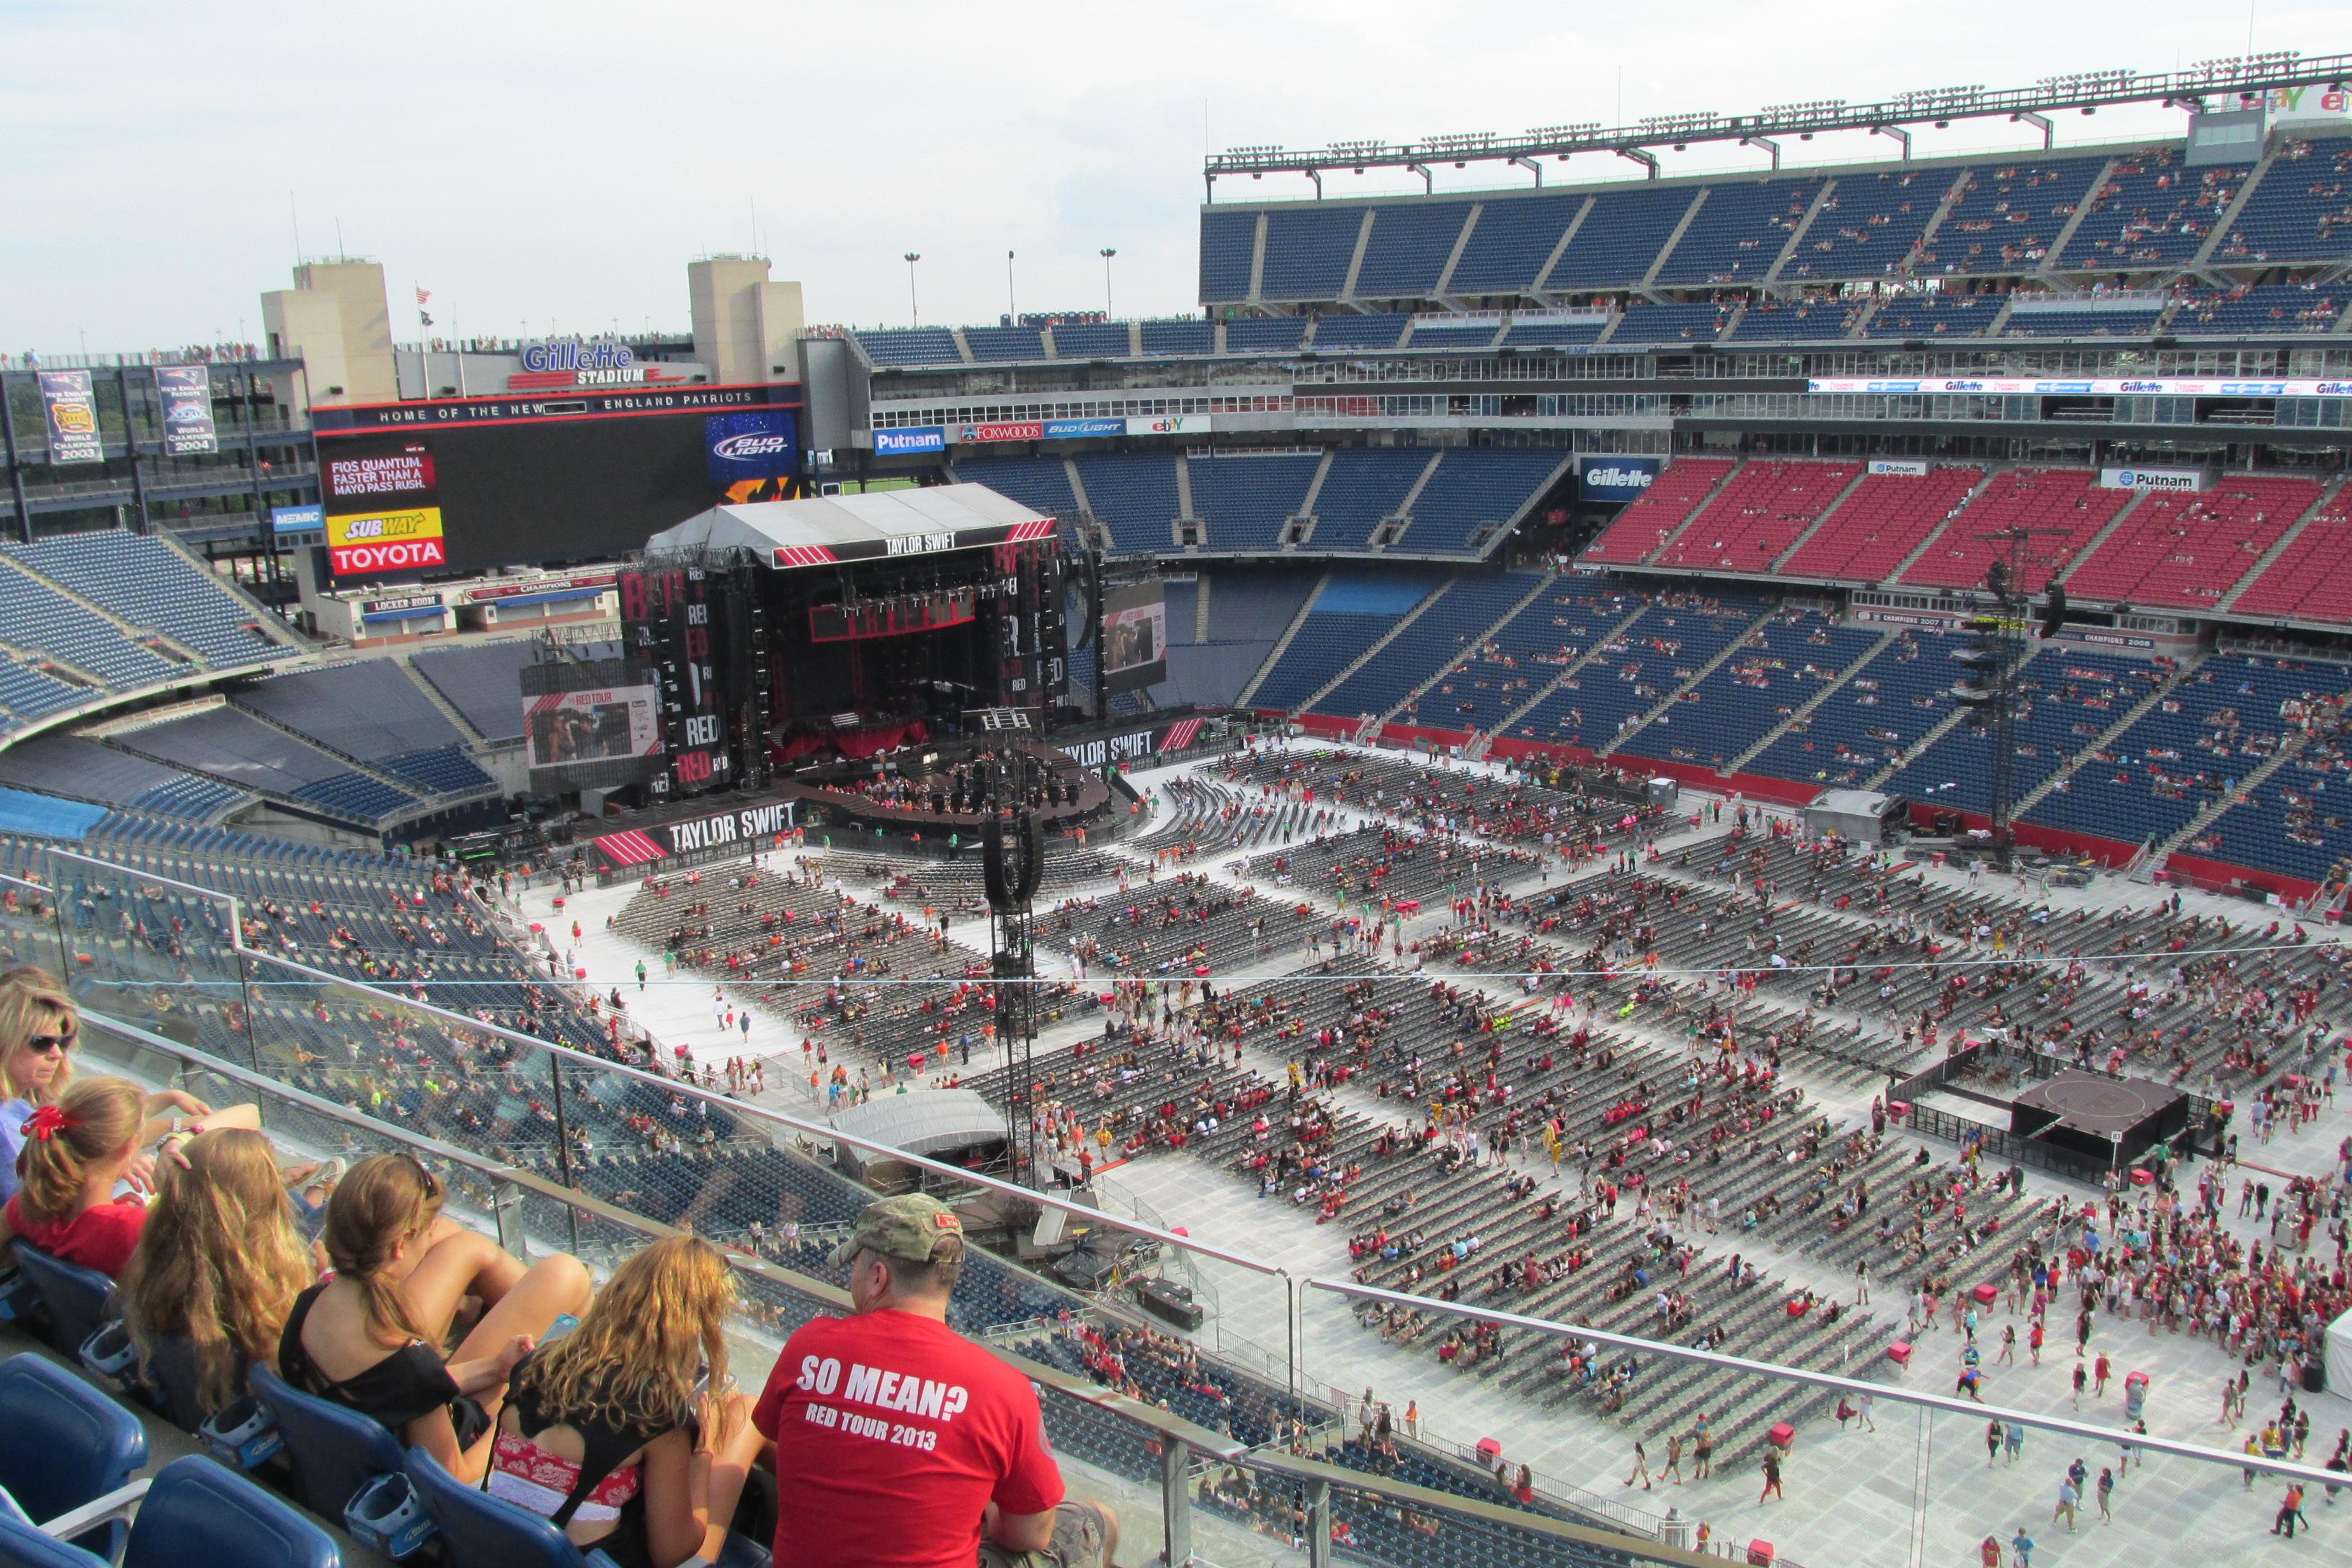 Gillette Stadium Taylor Swift Vs The Red Tour Shared